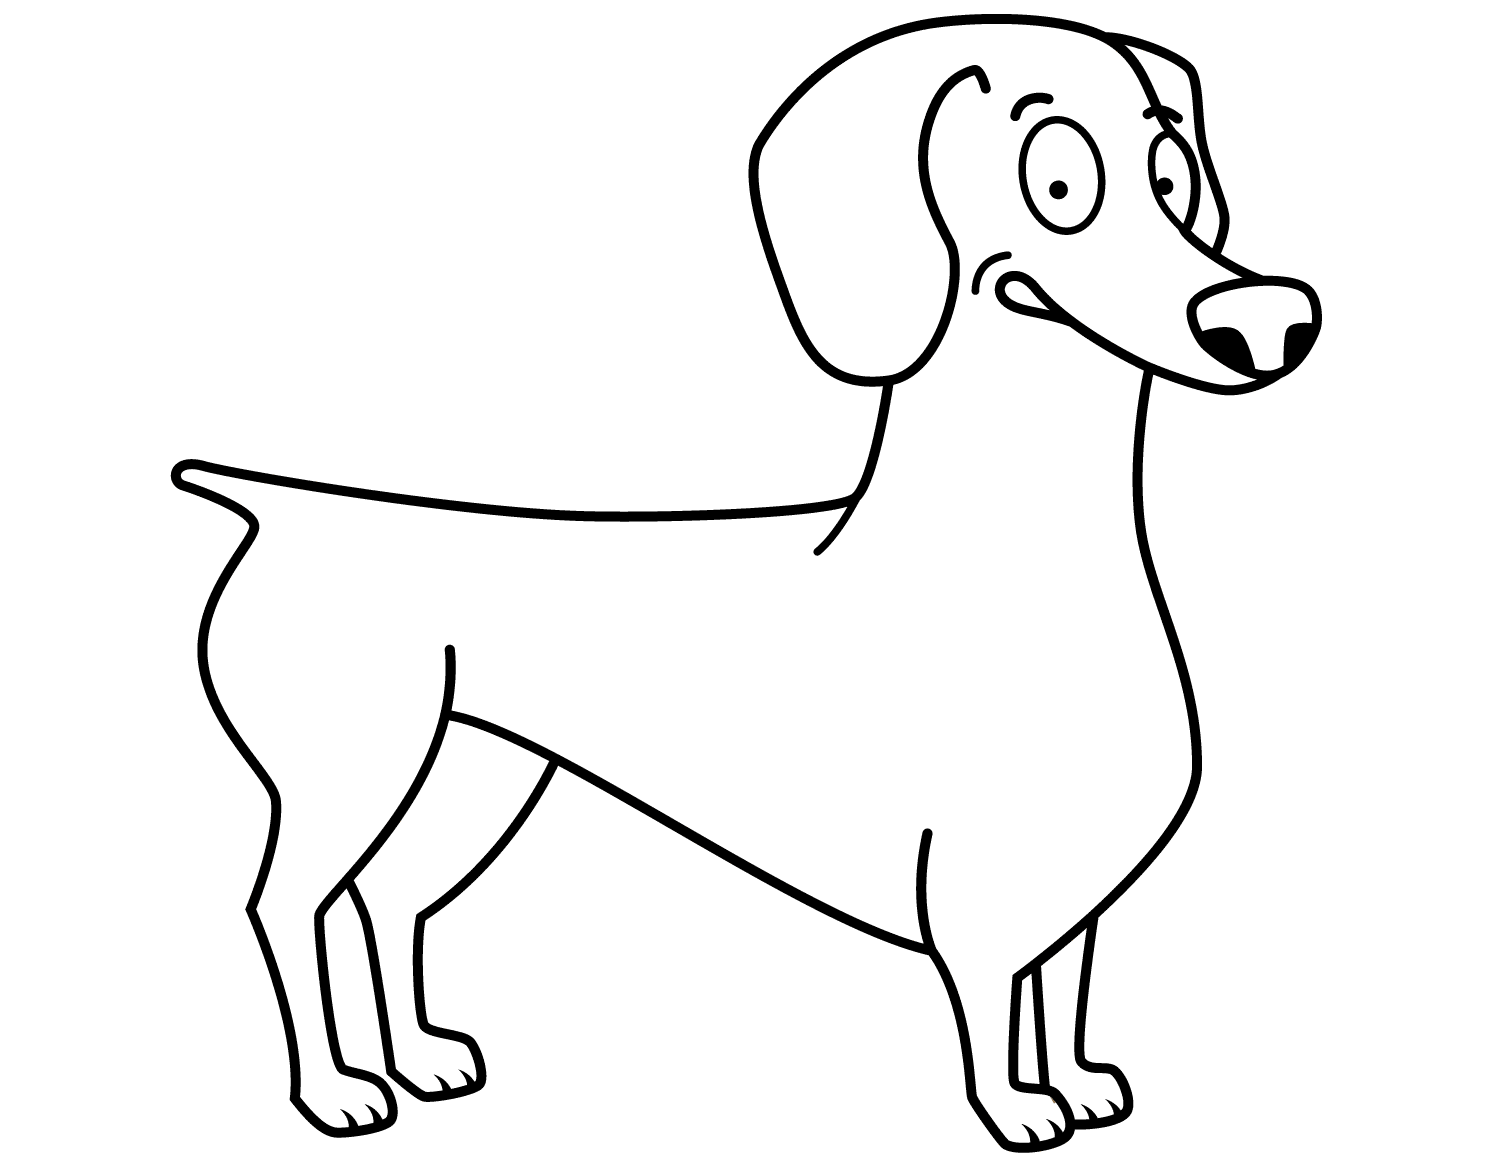 Dachshund Coloring Pages Printable